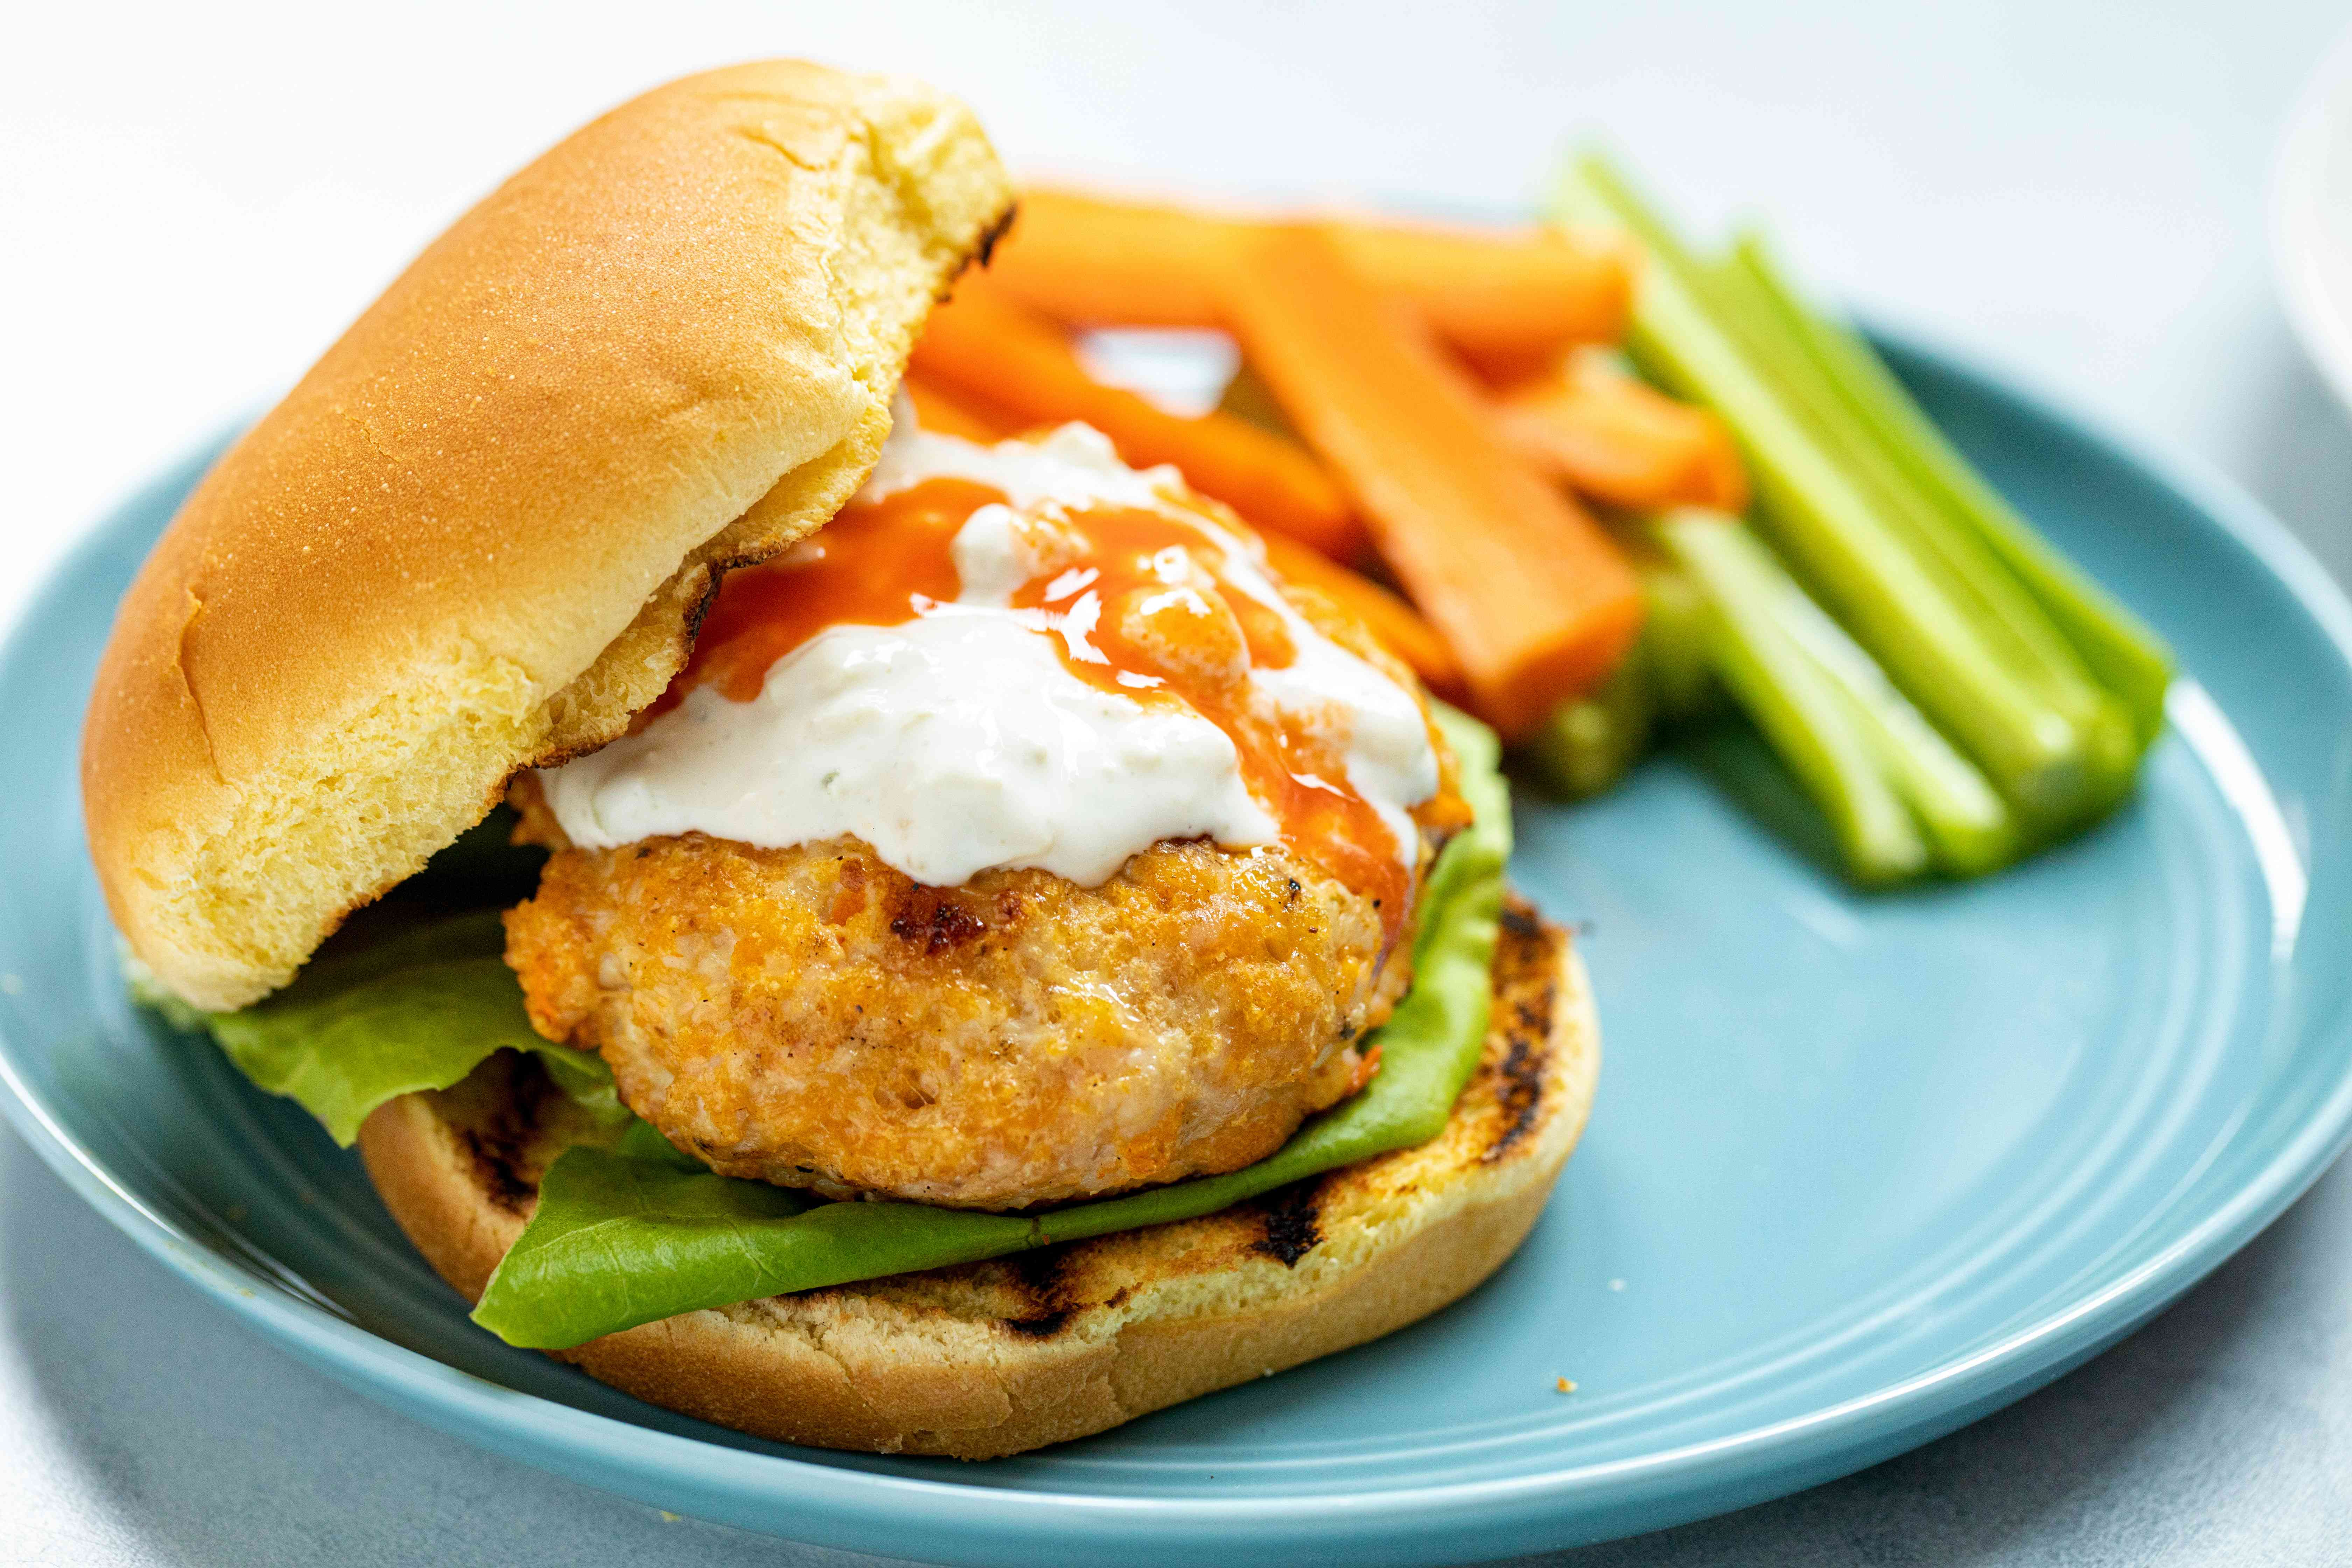 Buffalo chicken burgers with blue cheese sauce on a plate with carrots and celery.